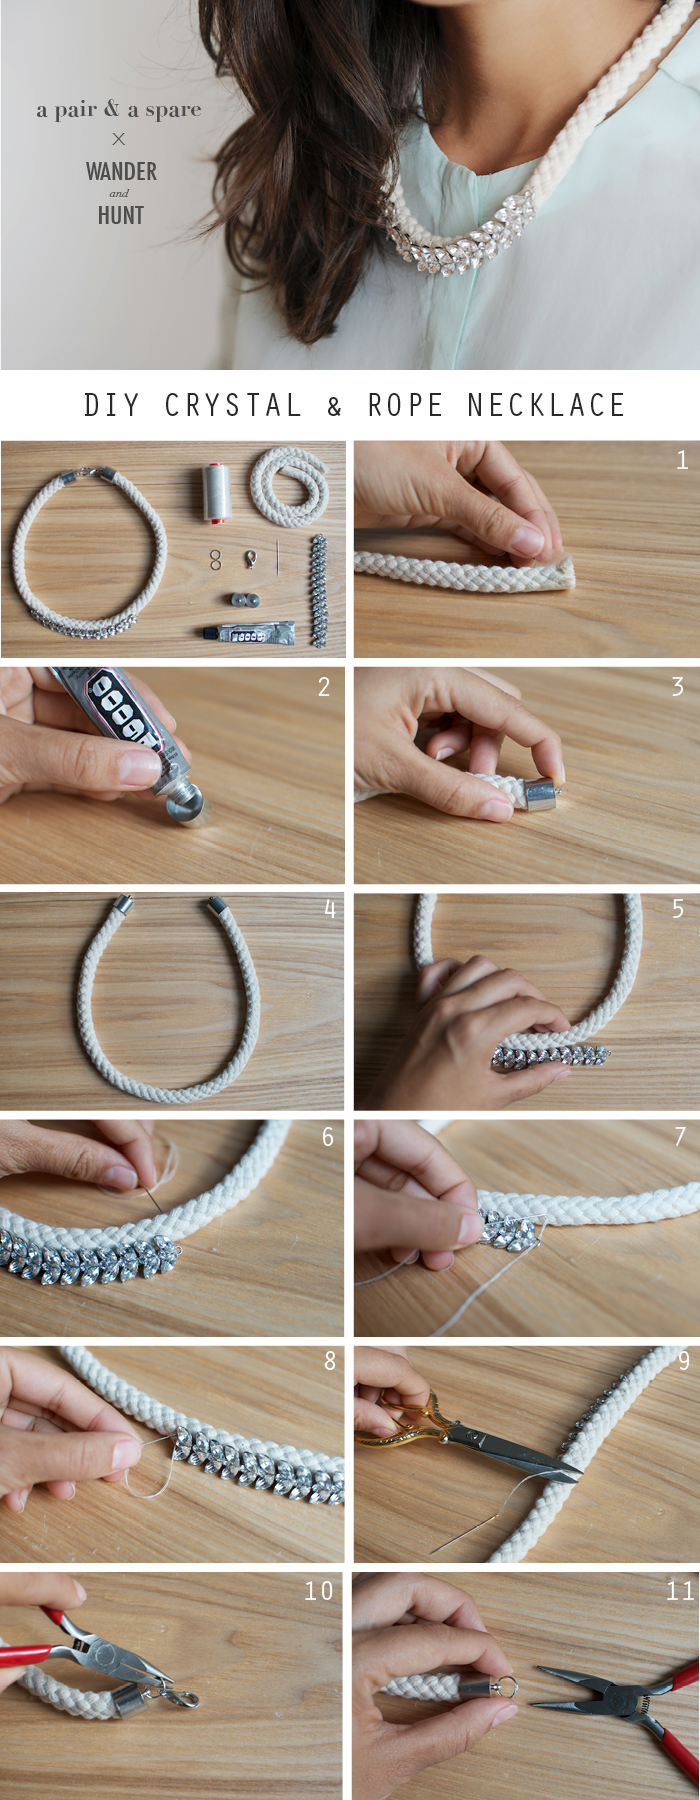 diy_a_pair_and_a_spare_for_wander_and_hunt_crystal_rope_necklace